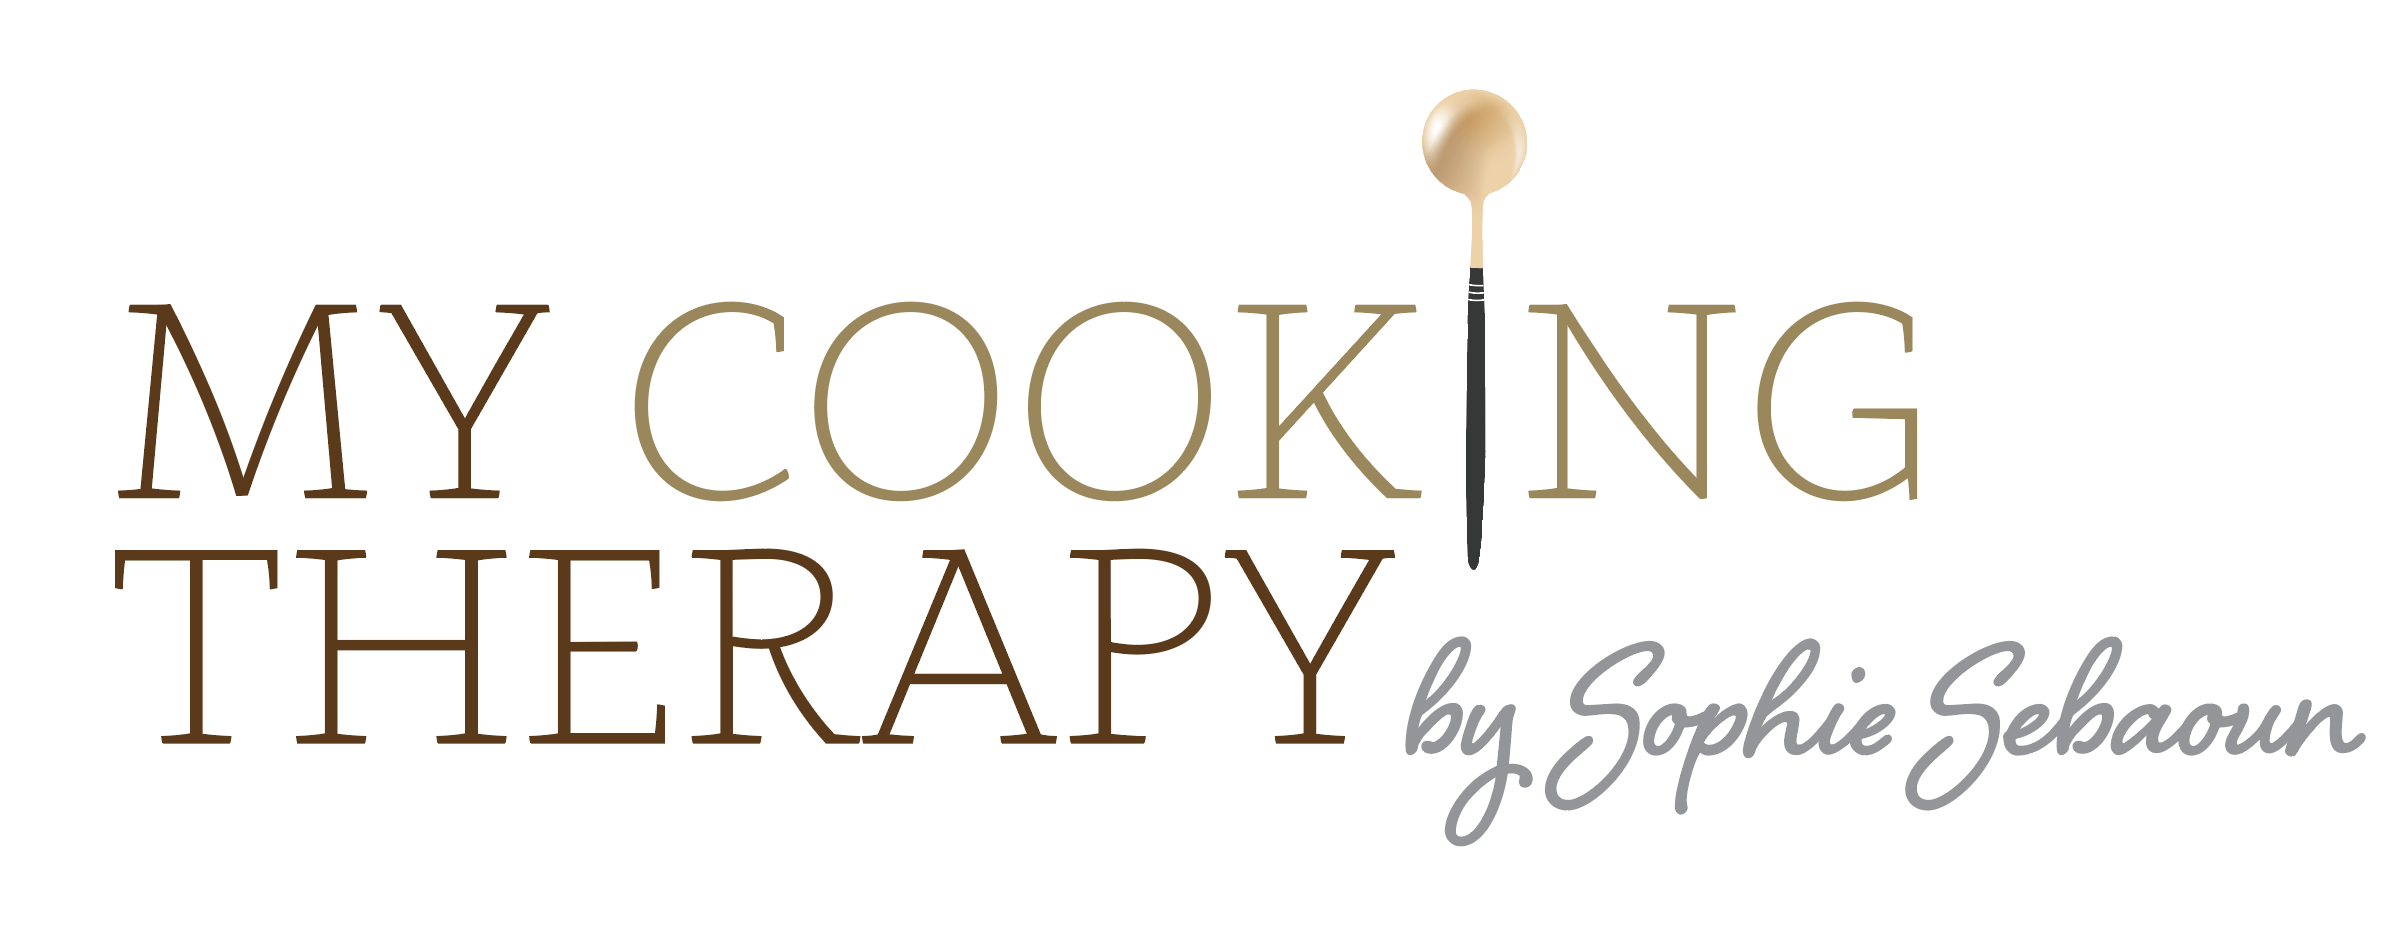 My Cooking Therapy